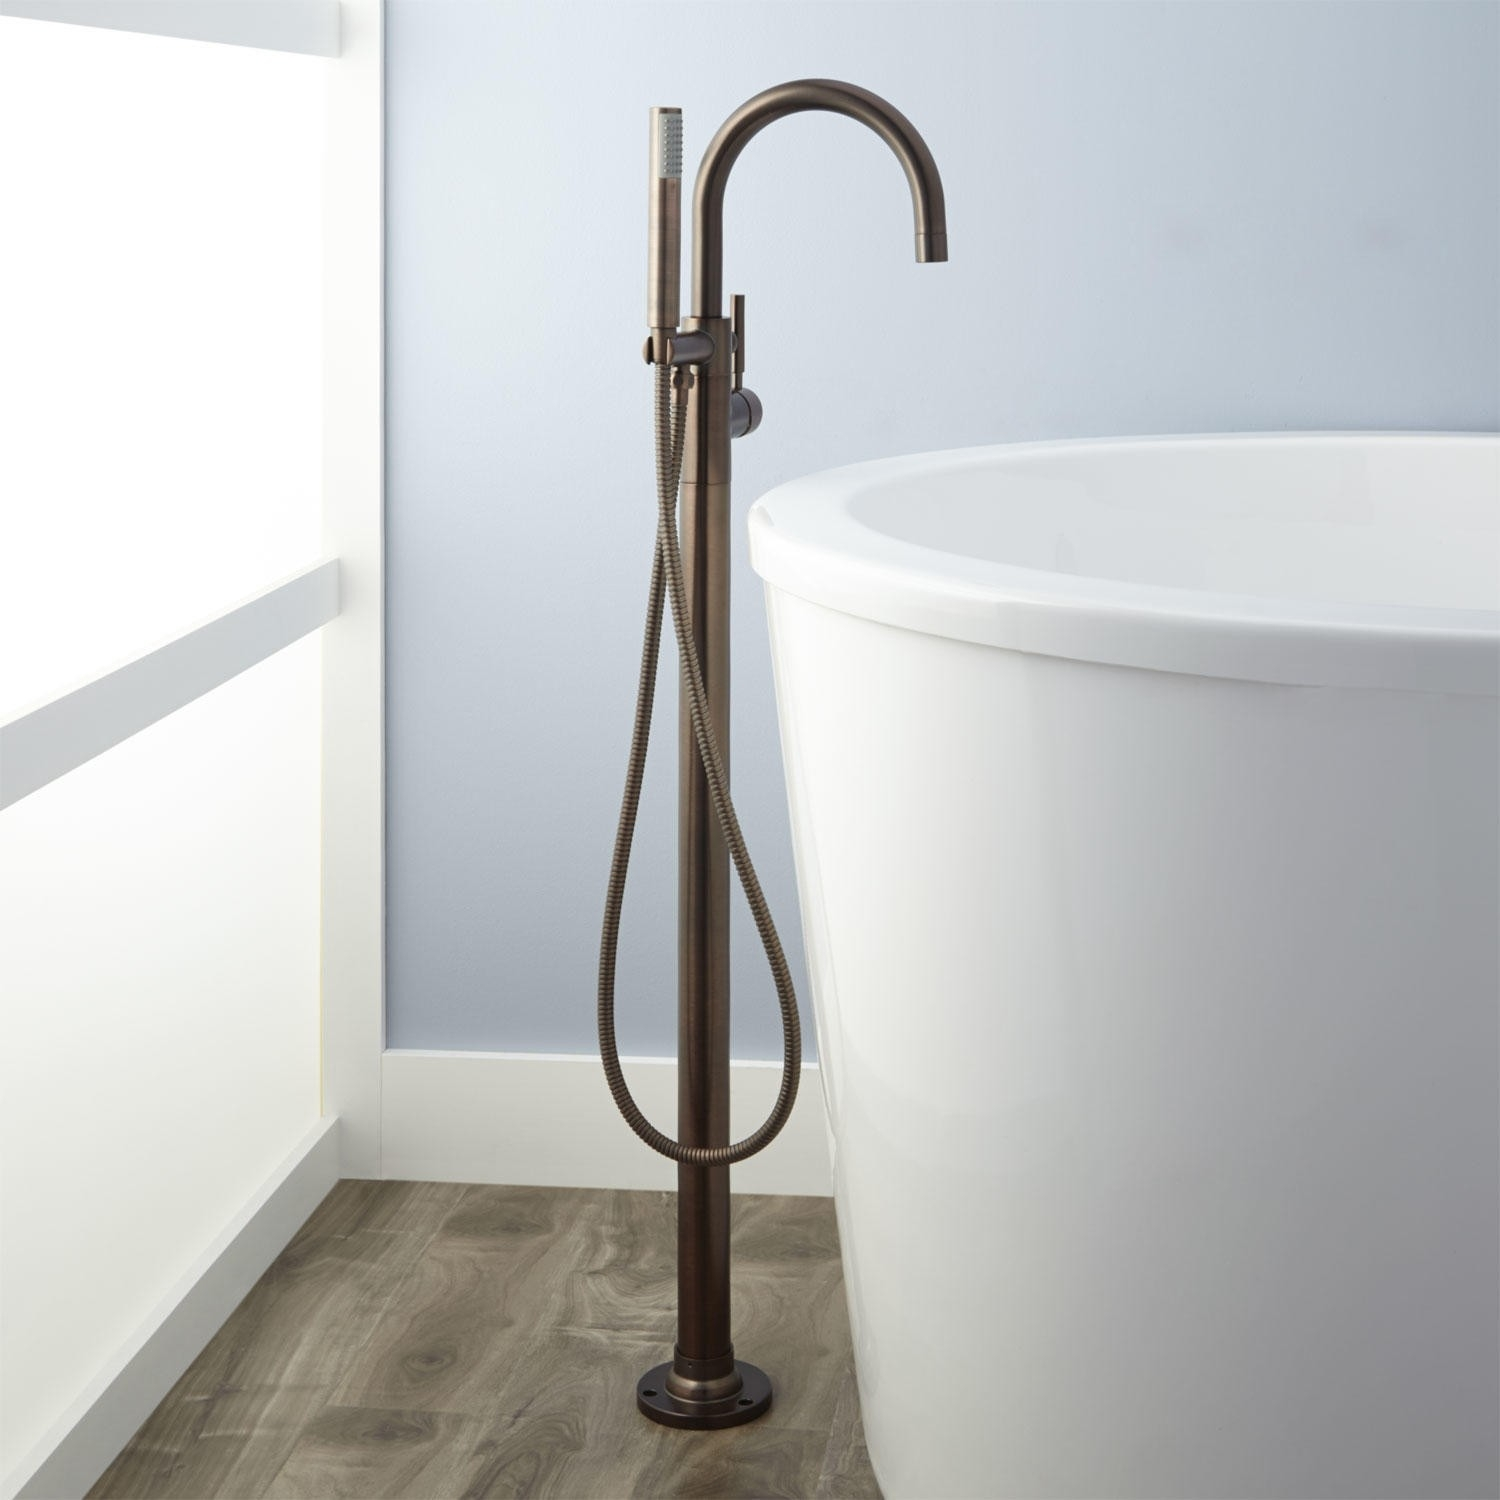 Ideas, stand alone bath faucet stand alone bath faucet simoni freestanding tub faucet and hand shower bathroom 1500 x 1500 1  .